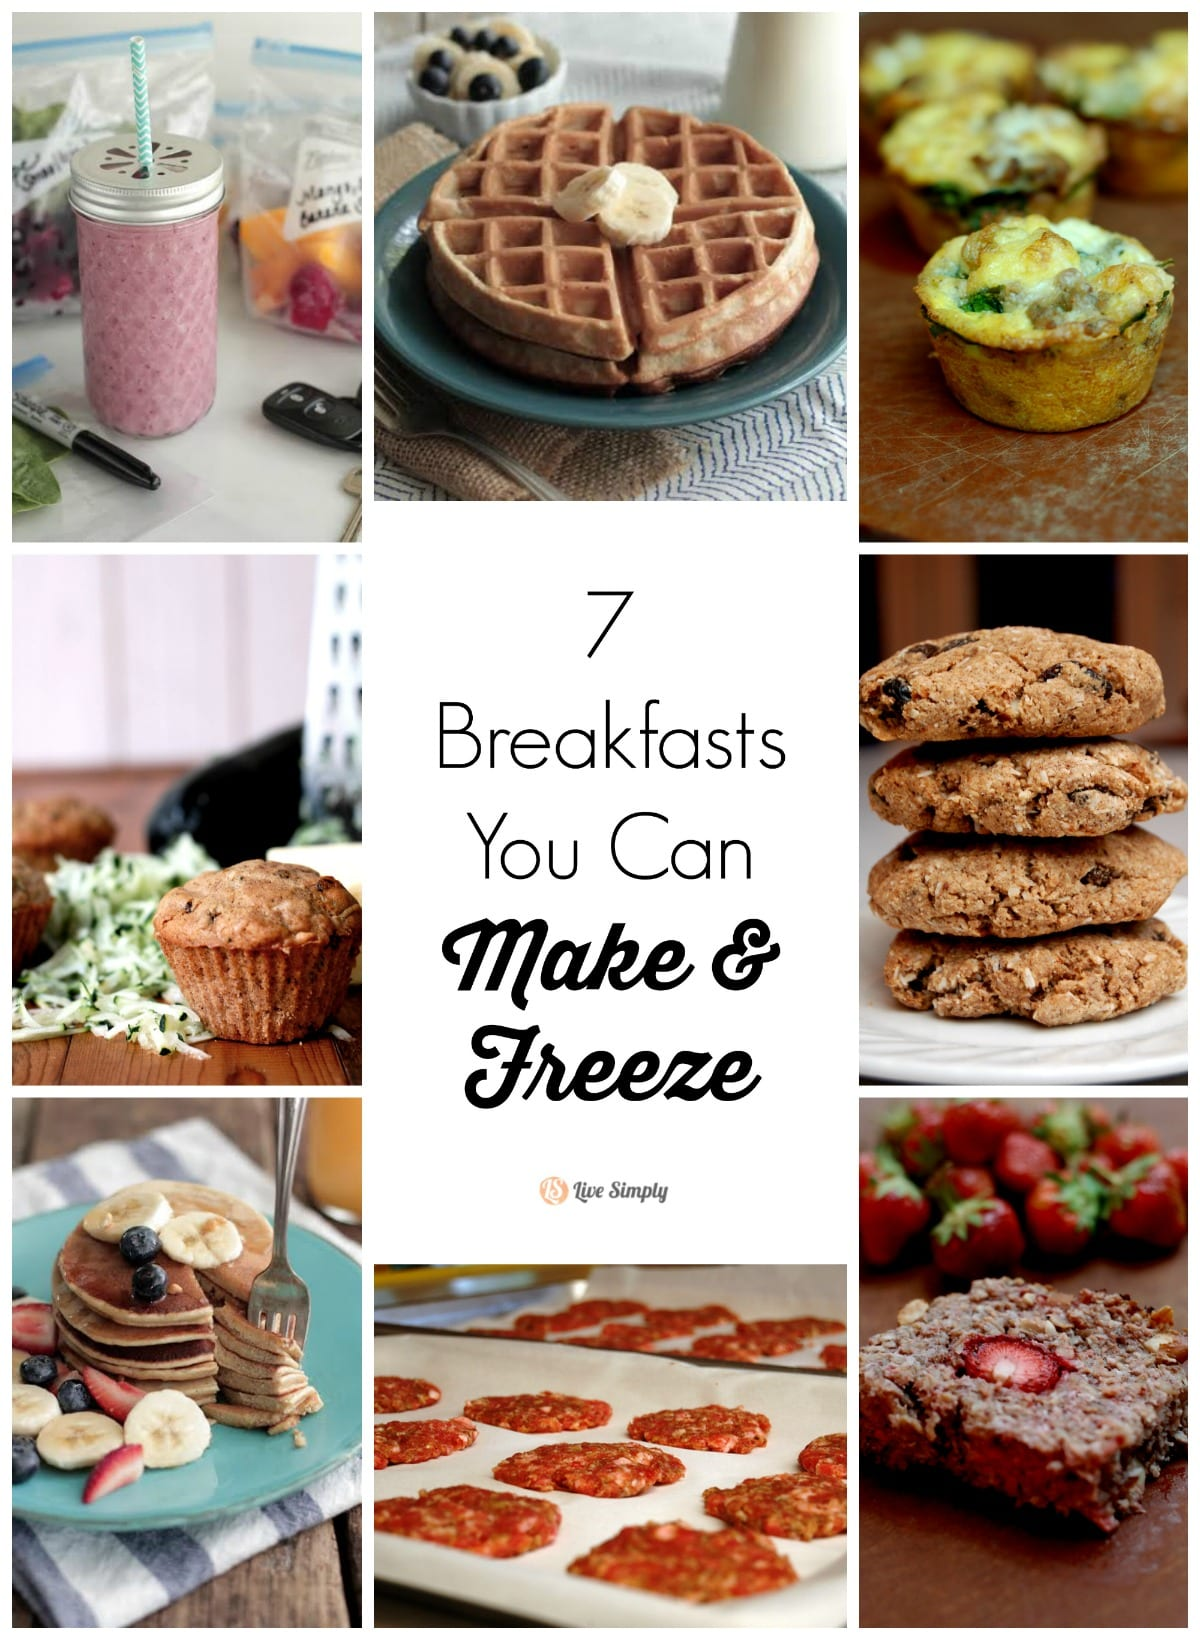 6 Breakfasts You Can Make and Freeze